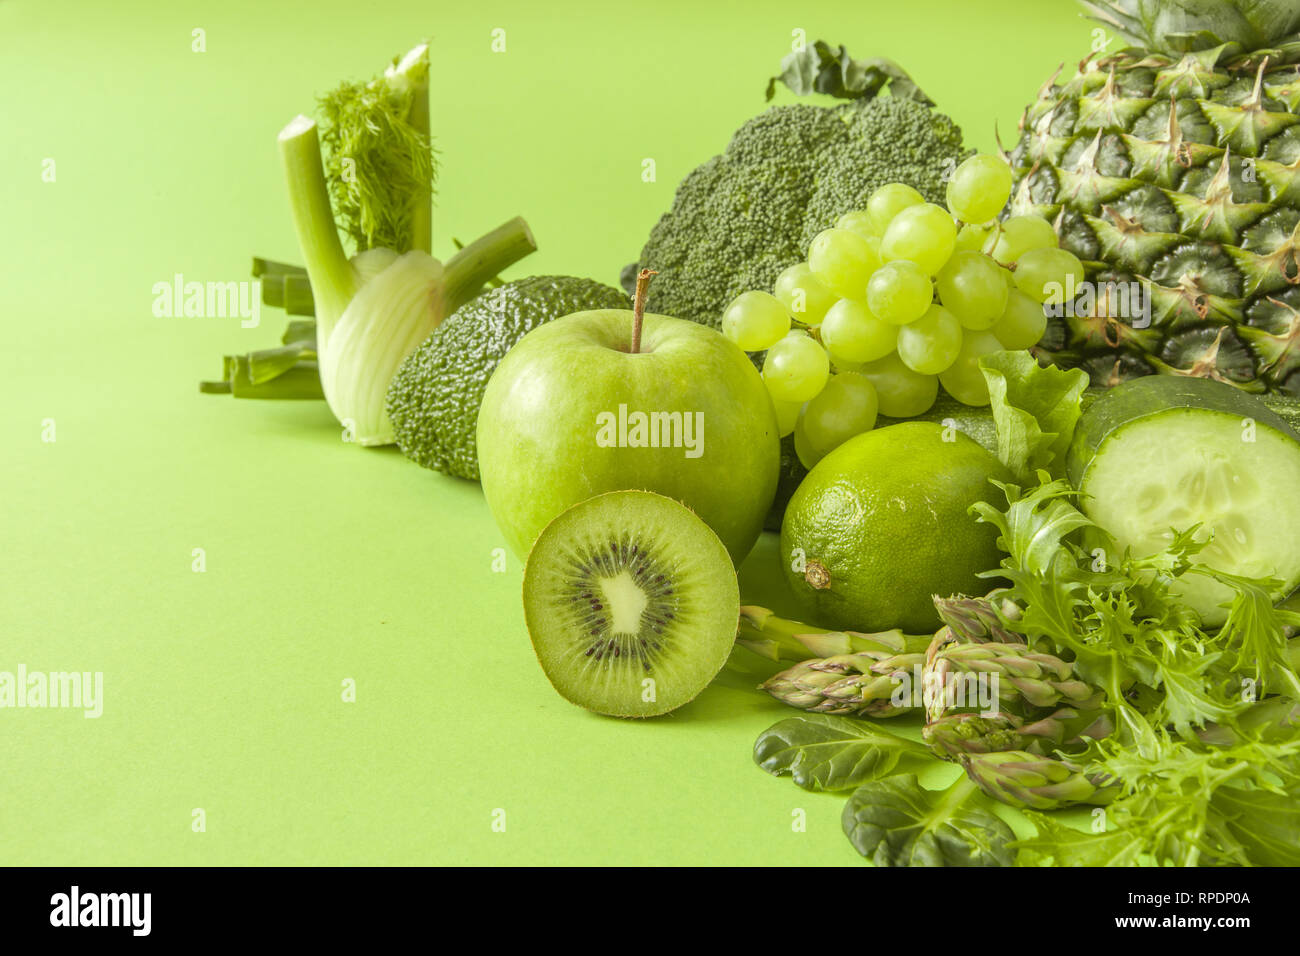 Green health smoothie fruits and vegetables, kale leaves, lime, apple, kiwi, grapes, banana, avocado, lettuce pineapple salat. Copy space. Raw, vegan Stock Photo